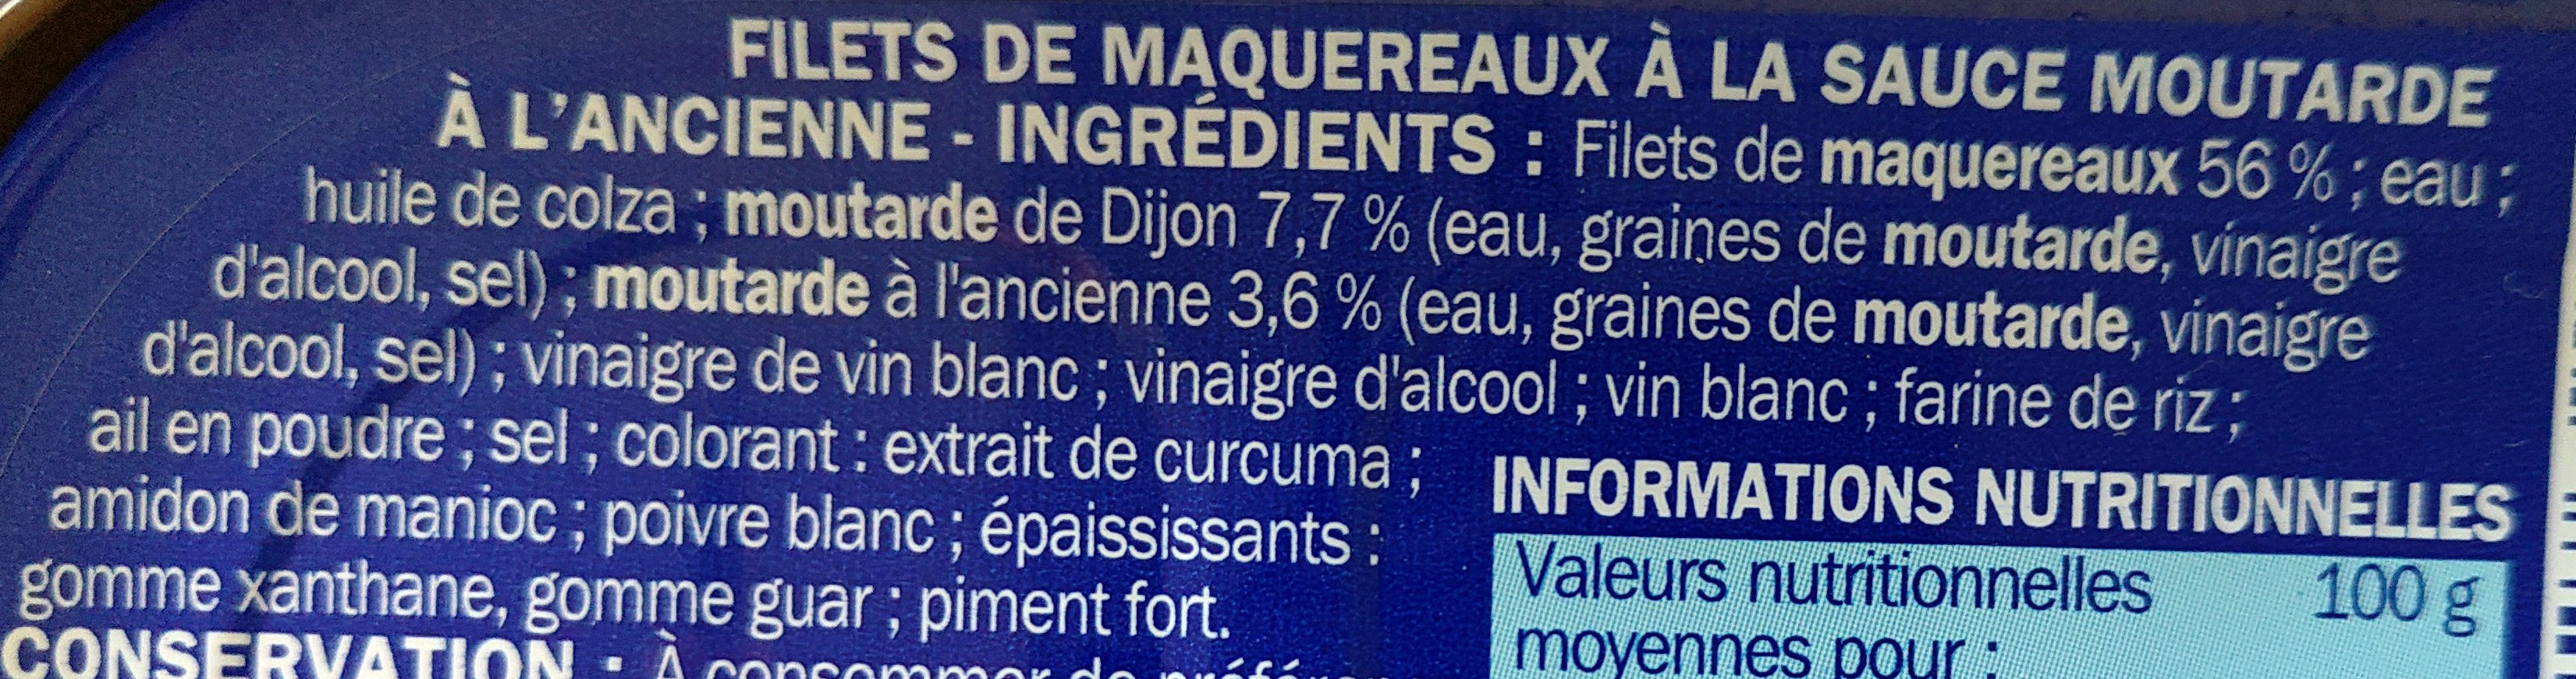 Filets maqueraux moutarde ancienne - Ingredients - fr